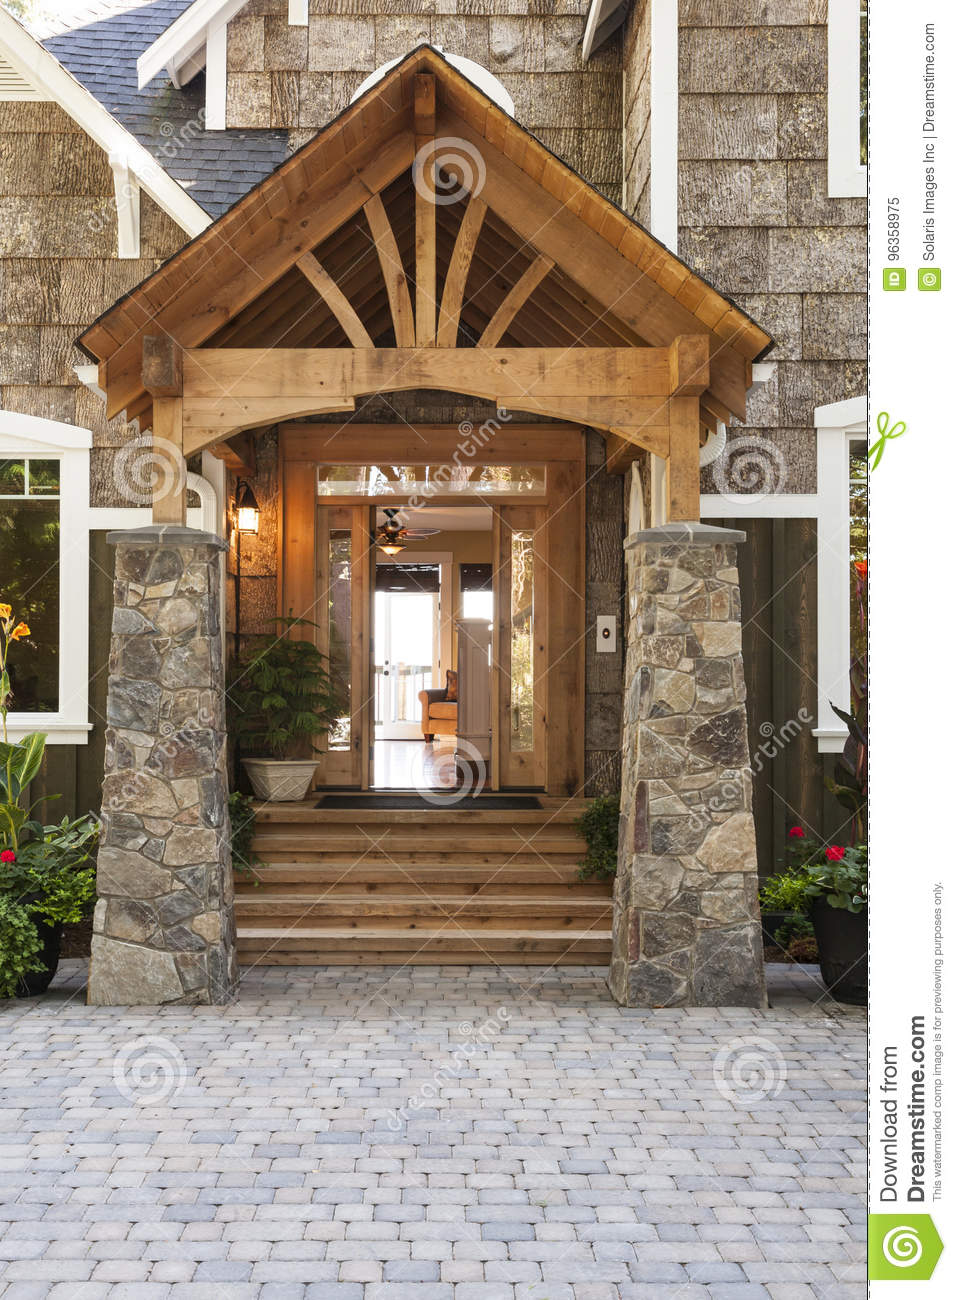 Exterior Porch And Front Door Entrance To Beautiful, Upscale Country on front entrance way designs, stone garage designs, stone bedroom designs, stone deck designs, front door entrance designs, stone yard designs, deck entrance designs, stone interior designs, stone wall designs, rock entrance designs, stone pond designs, stone garden designs, front step designs, driveway entrance designs, neighborhood entrance designs, front entry designs, brick entrance designs, entrance landscape designs, stone patio designs, subdivision entrance designs,